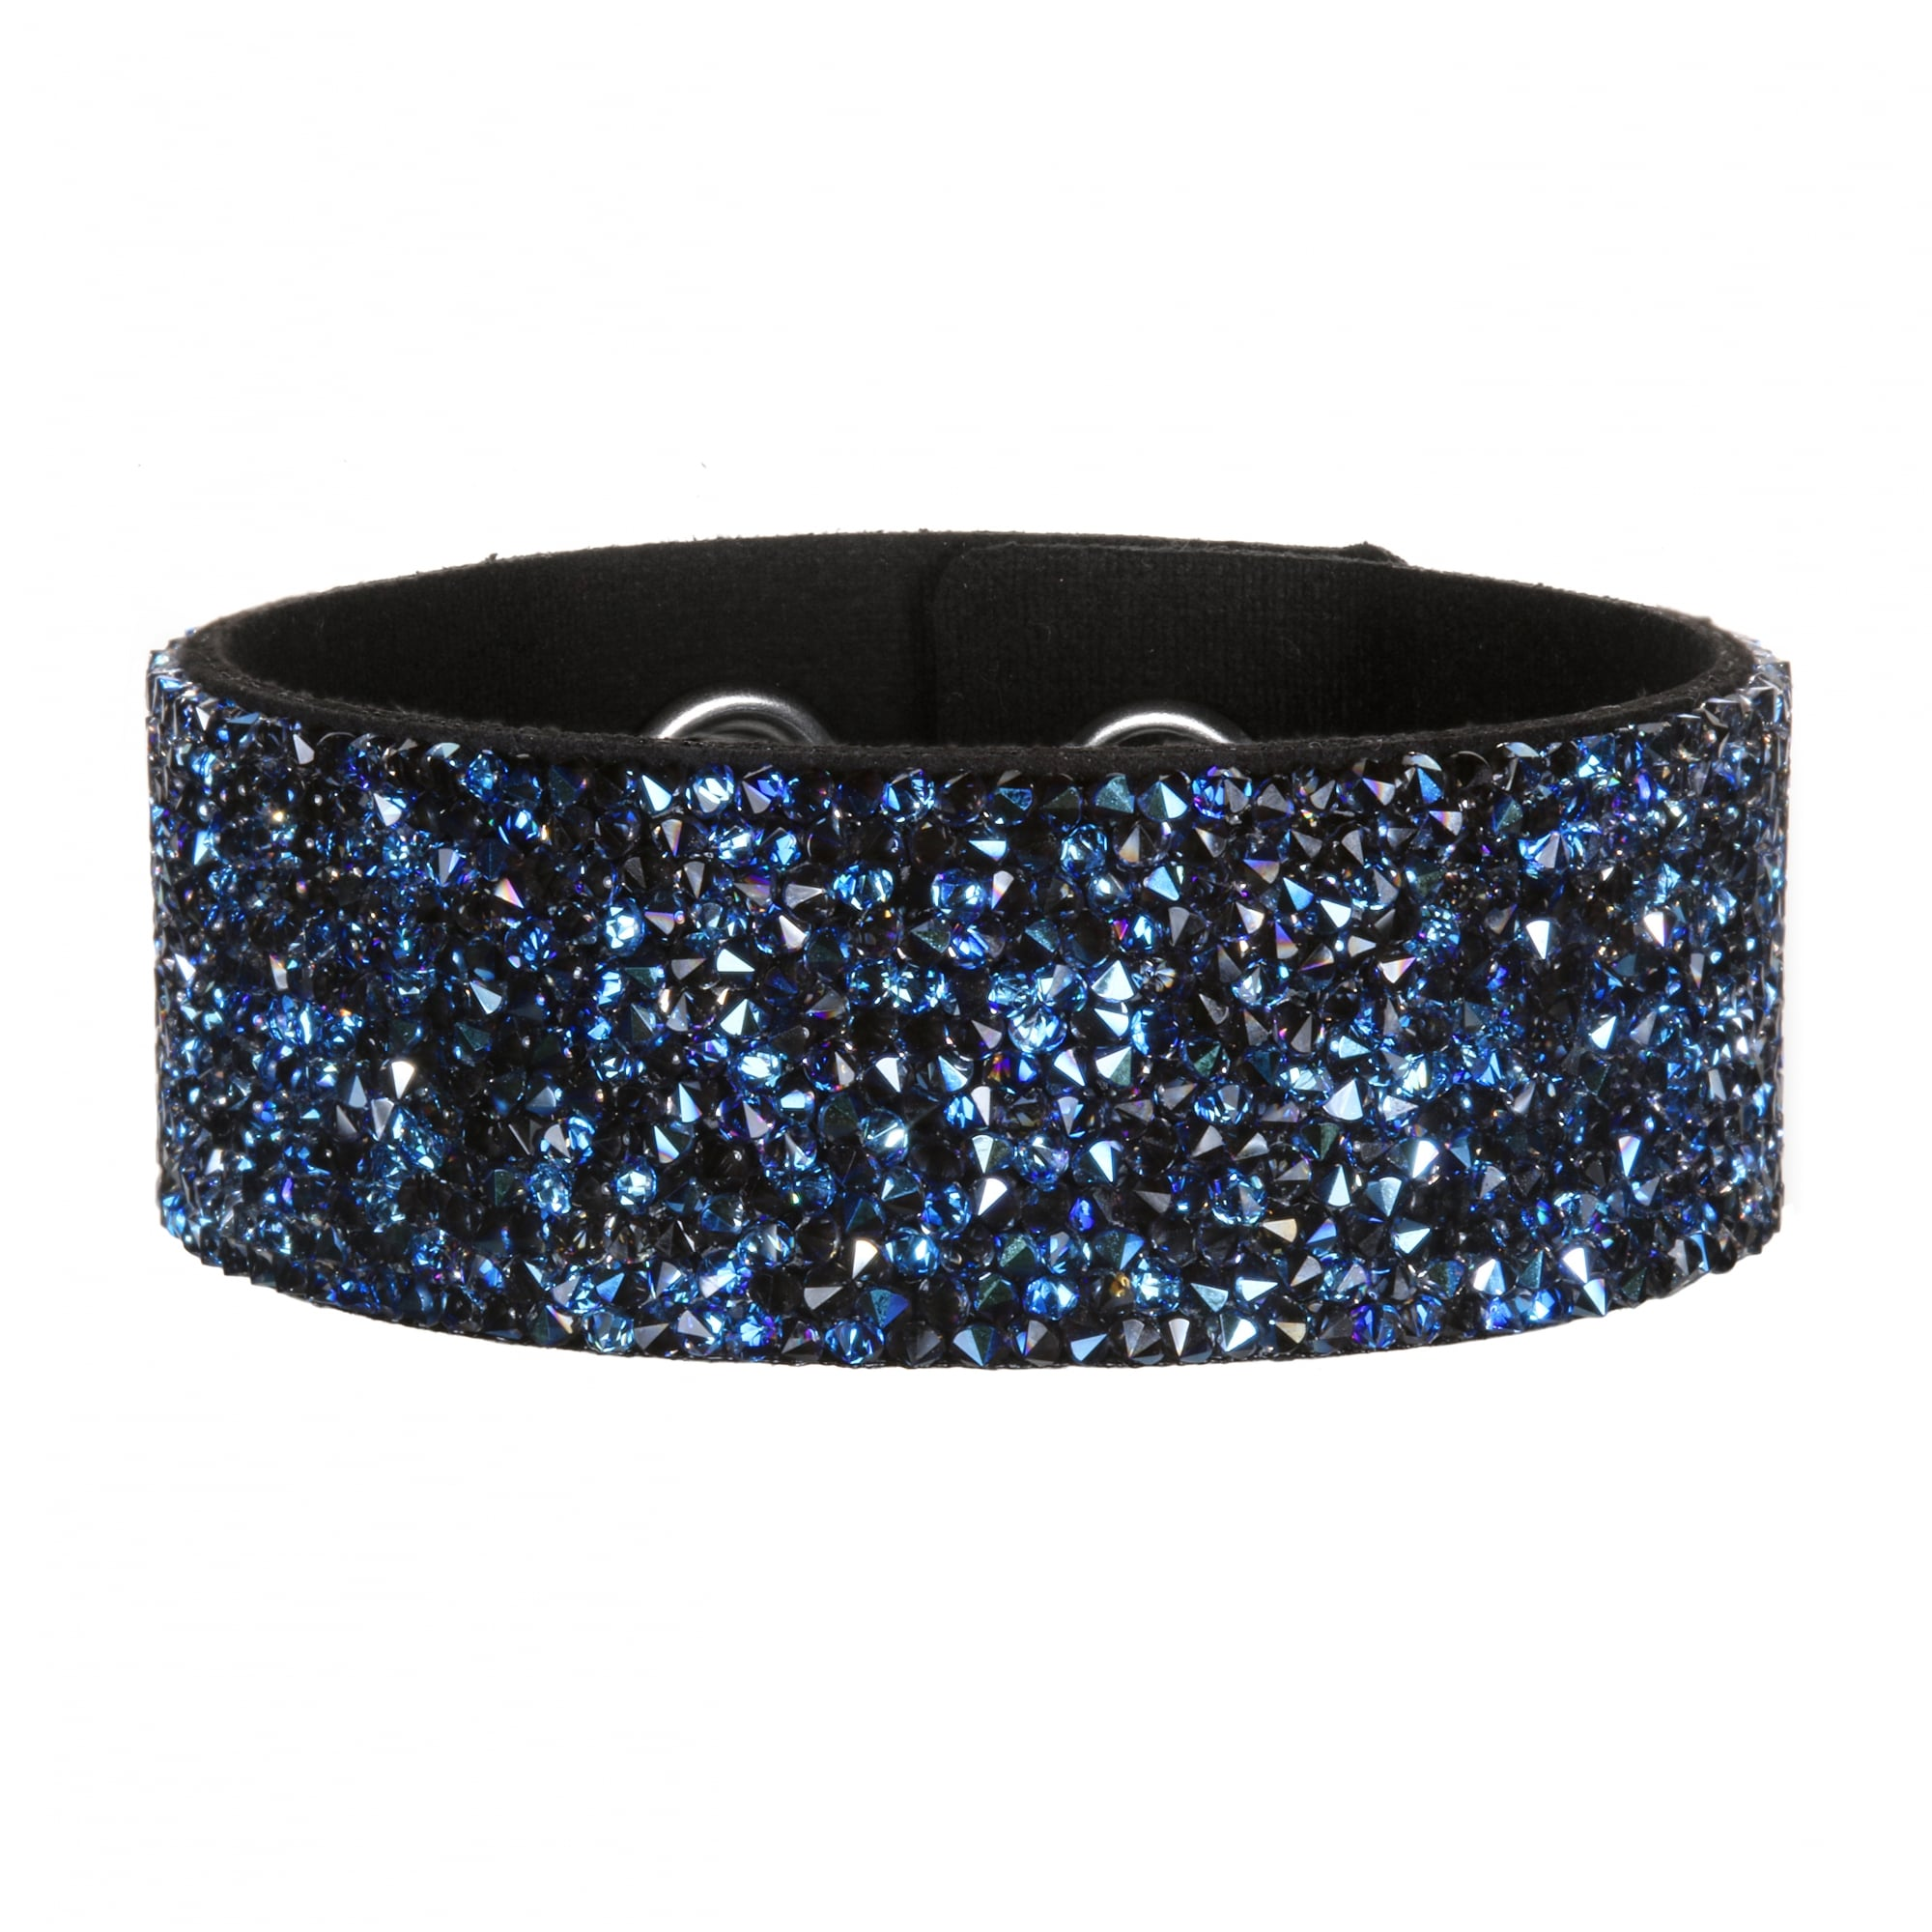 Karl Lagerfeld Crystal Cer Suede Cuff Bracelet Created With Swarovski Crystals